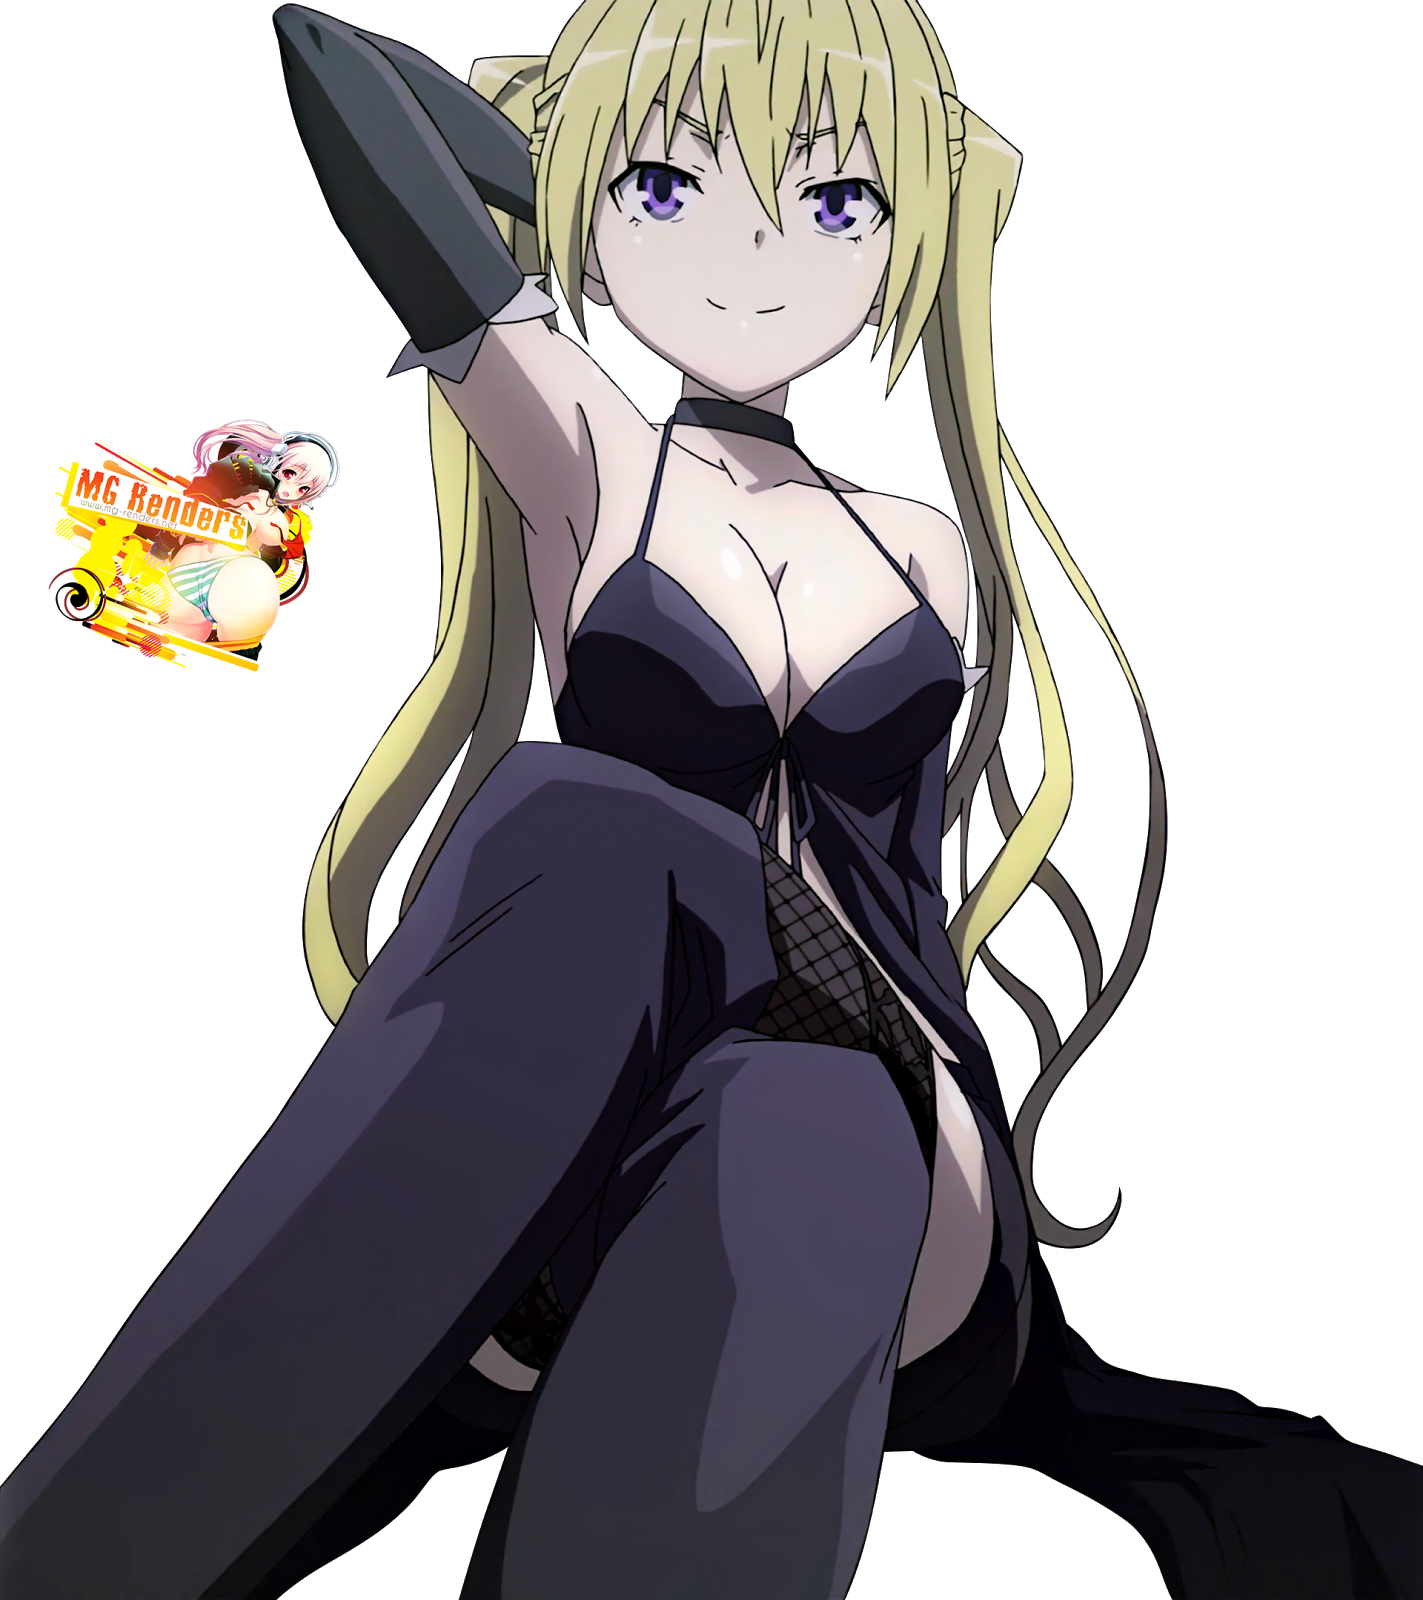 Tags: Anime, Render,  Crossed Legs,  Lieselotte Sherlock,  Trinity Seven,  PNG, Image, Picture